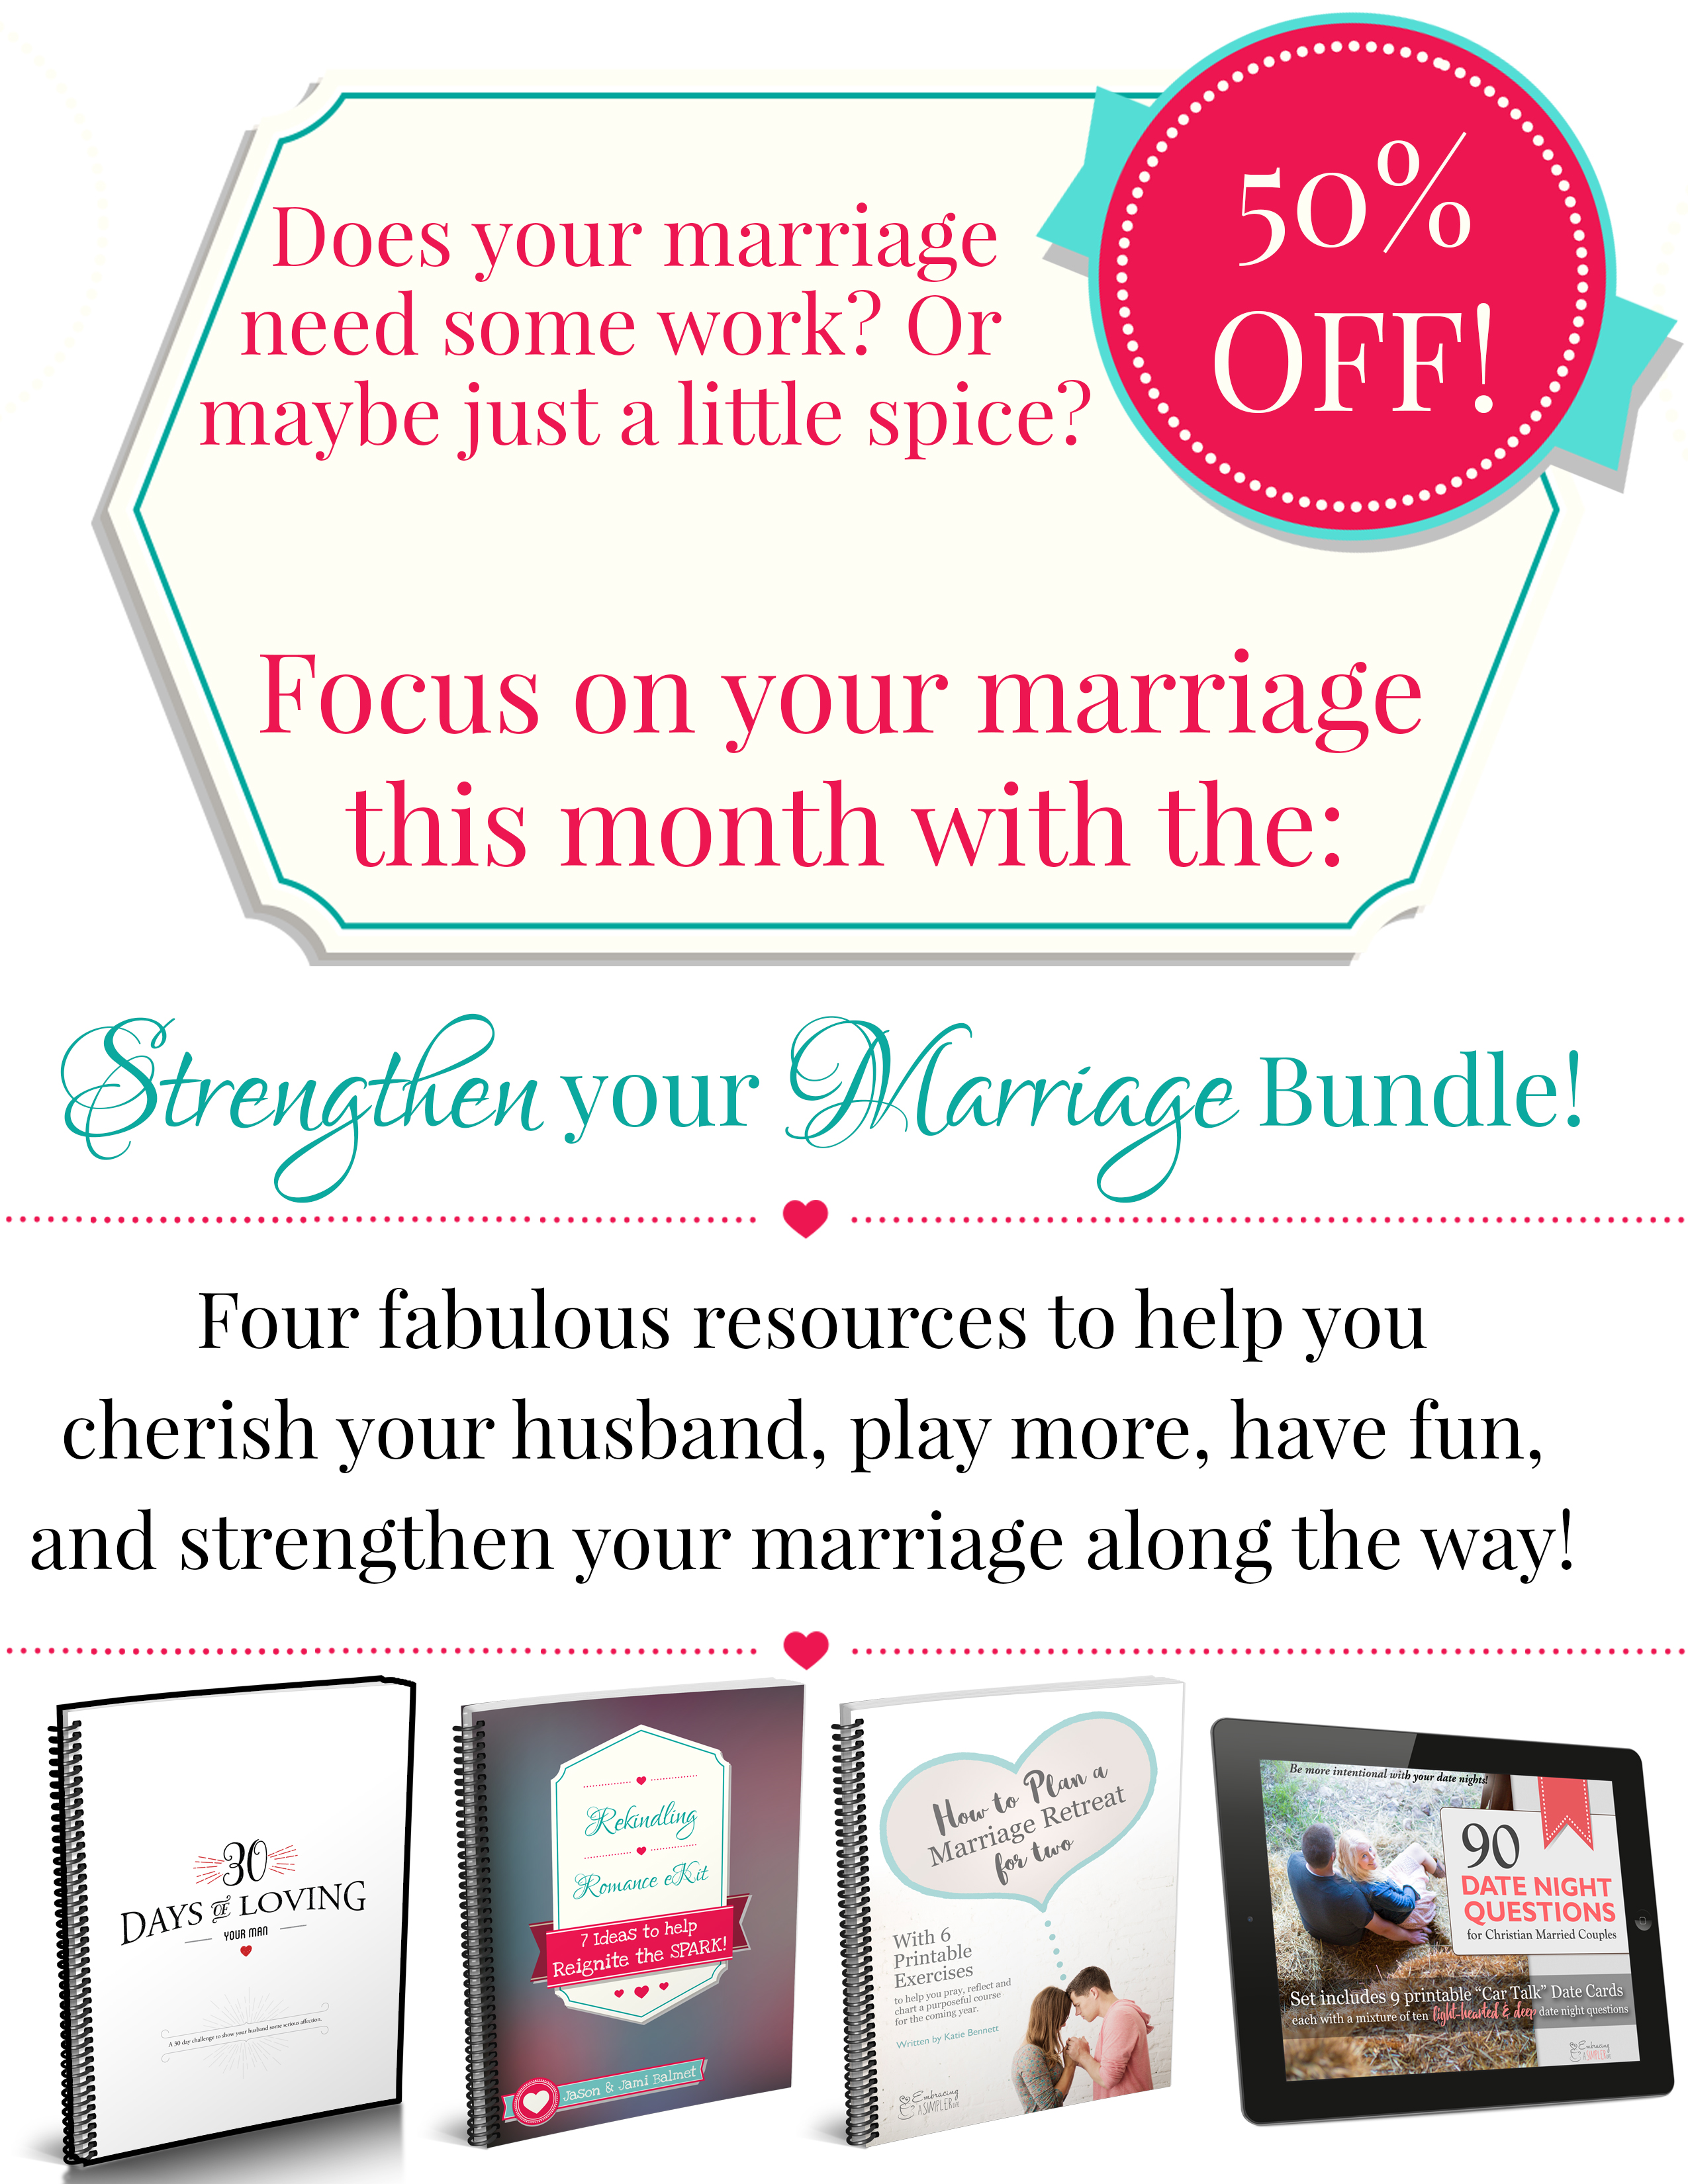 Strengthen Your Marriage Bundle